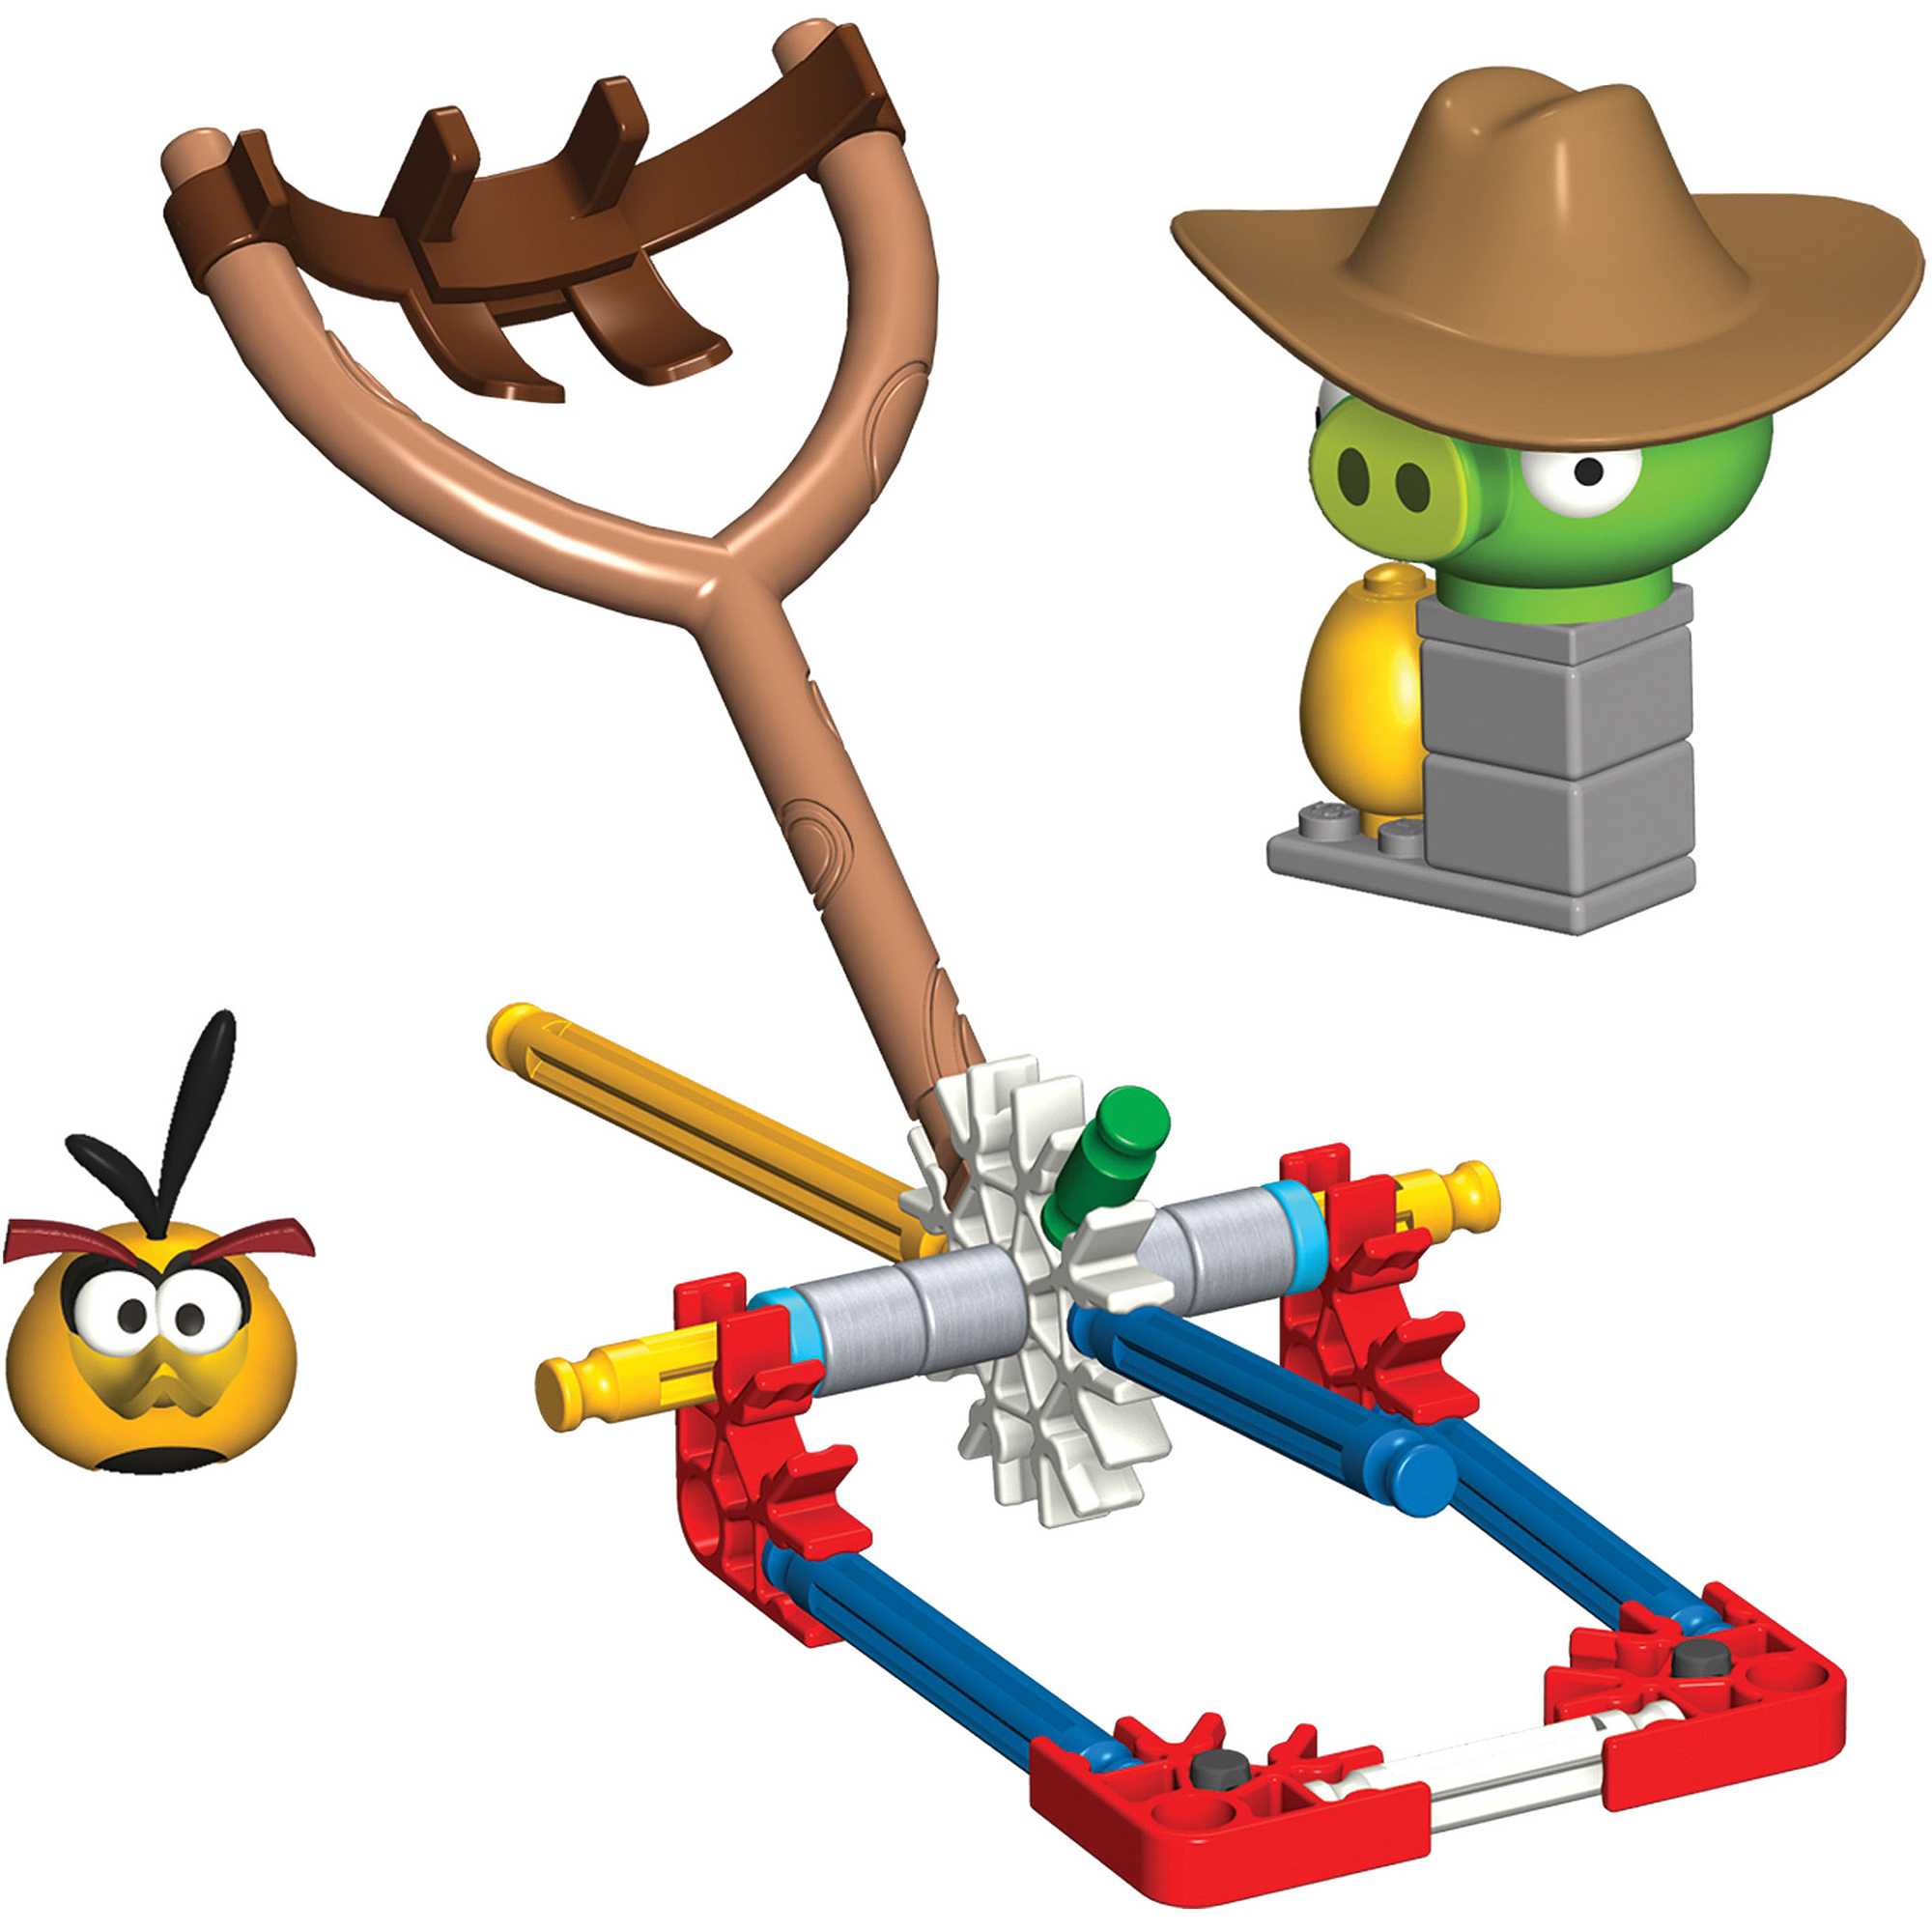 K'NEX Angry Birds Bubbles vs. Medium Minion Pig